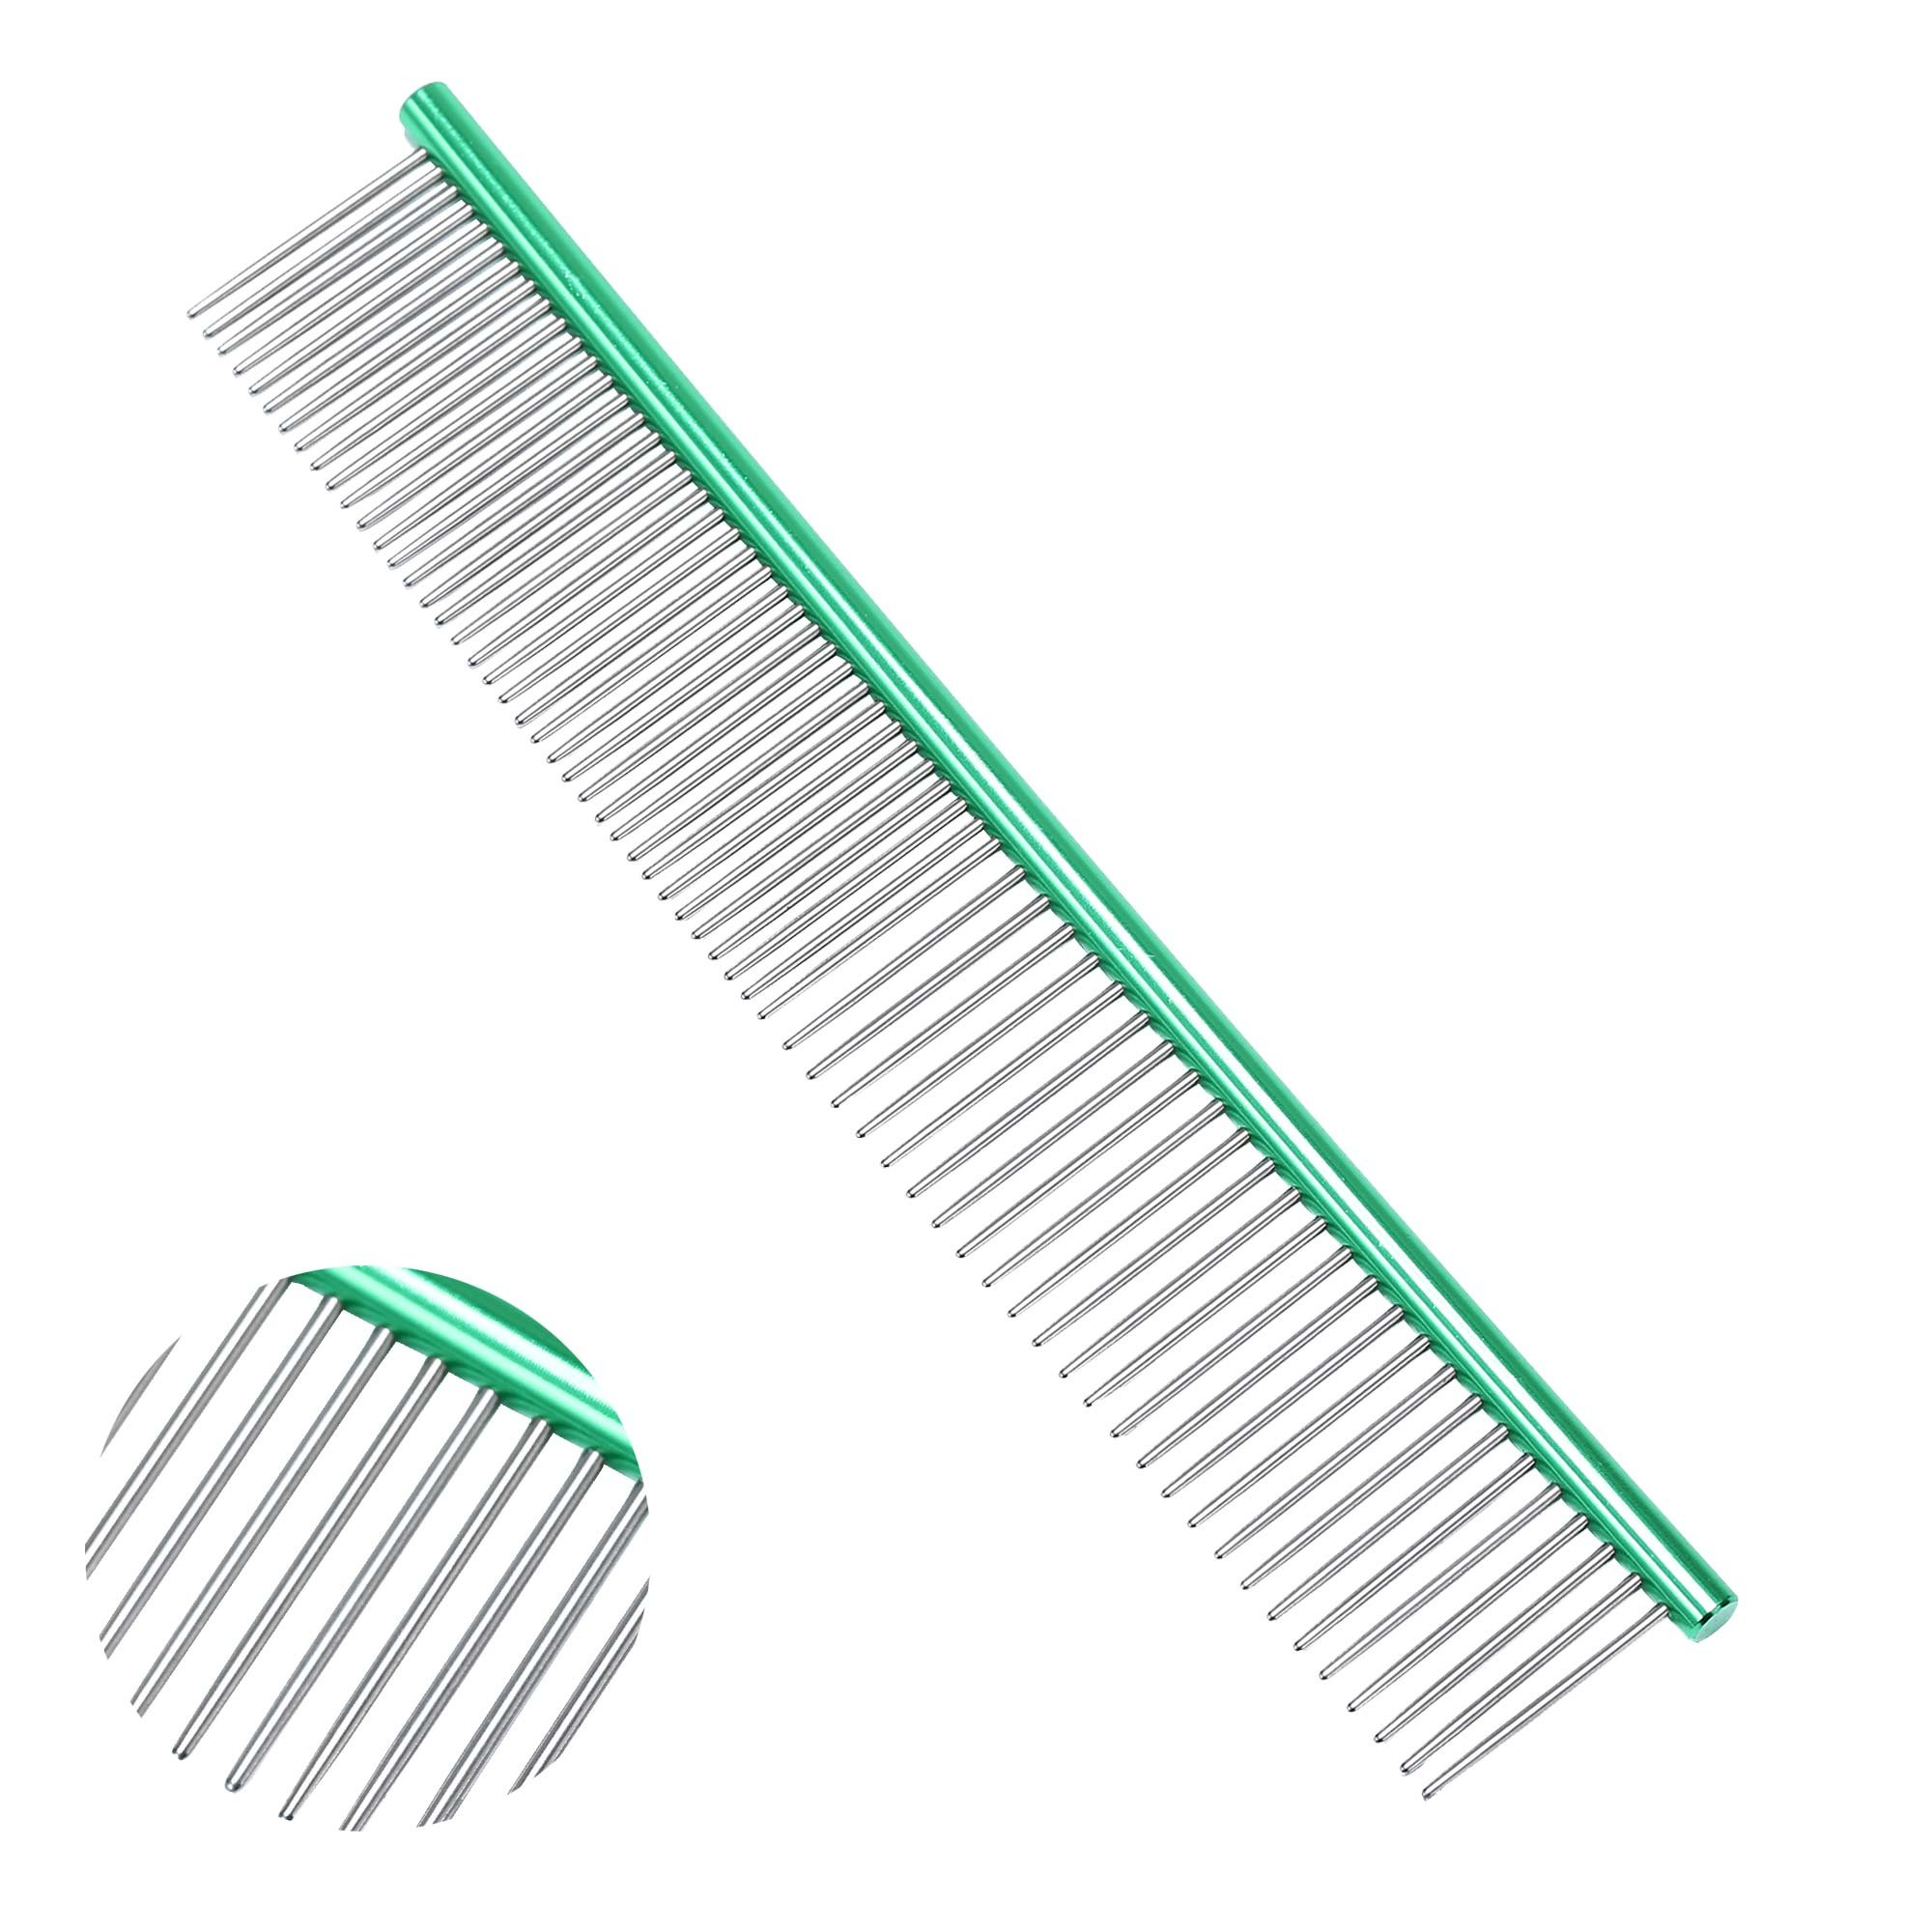 Stainless Steel Dog Comb-Grooming Comb For Dogs, Cats and Other Pets, Great Shedding Tool(GREEN)